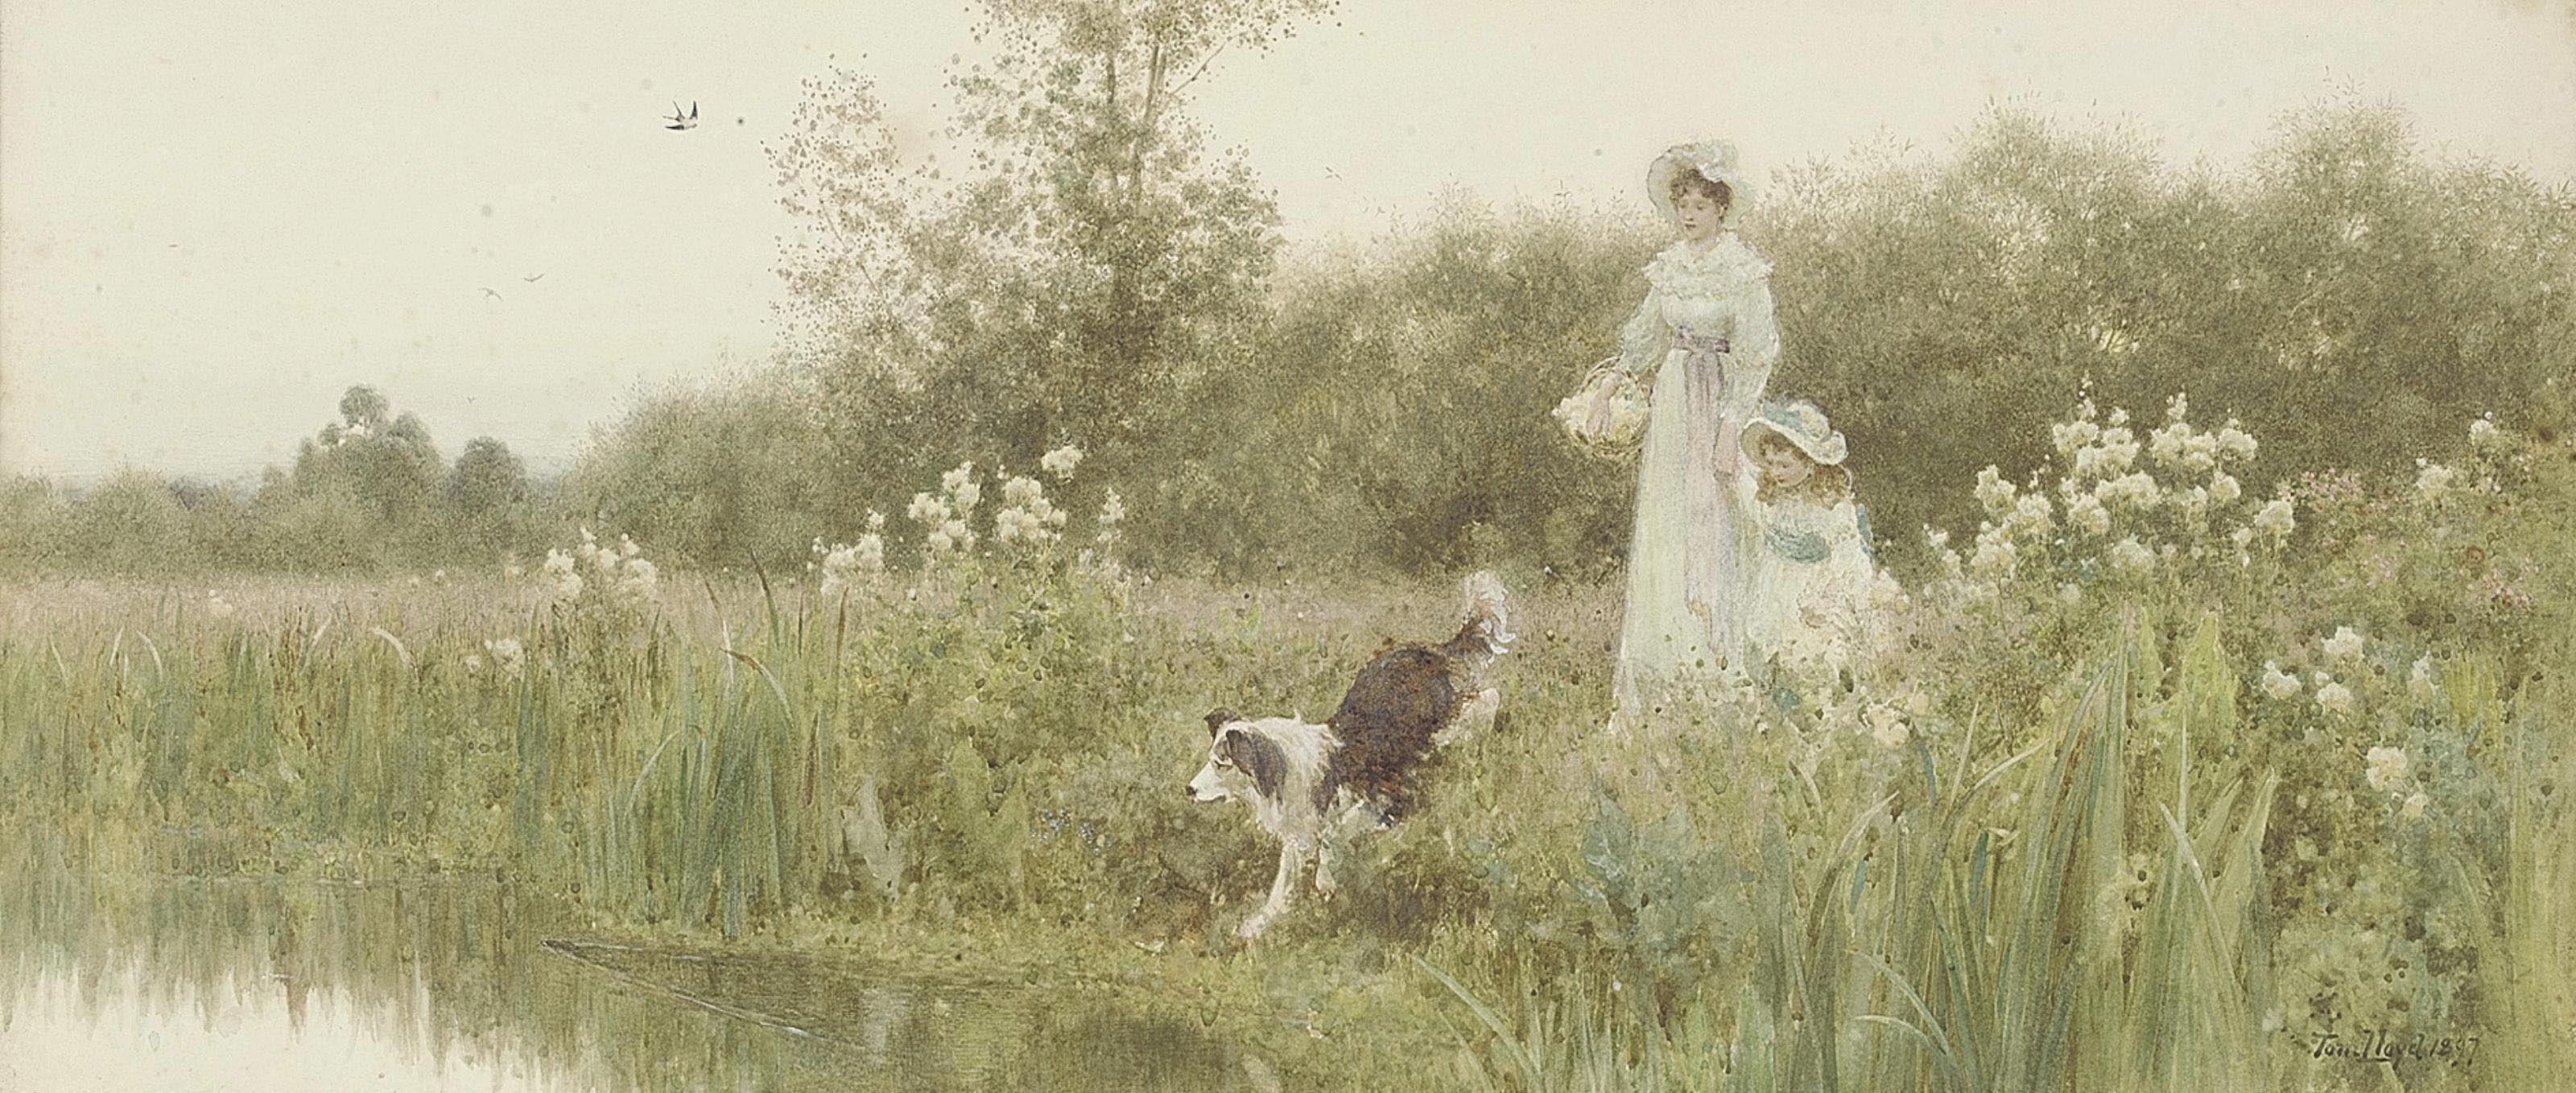 A mother and child with their sheepdog on the banks of a river